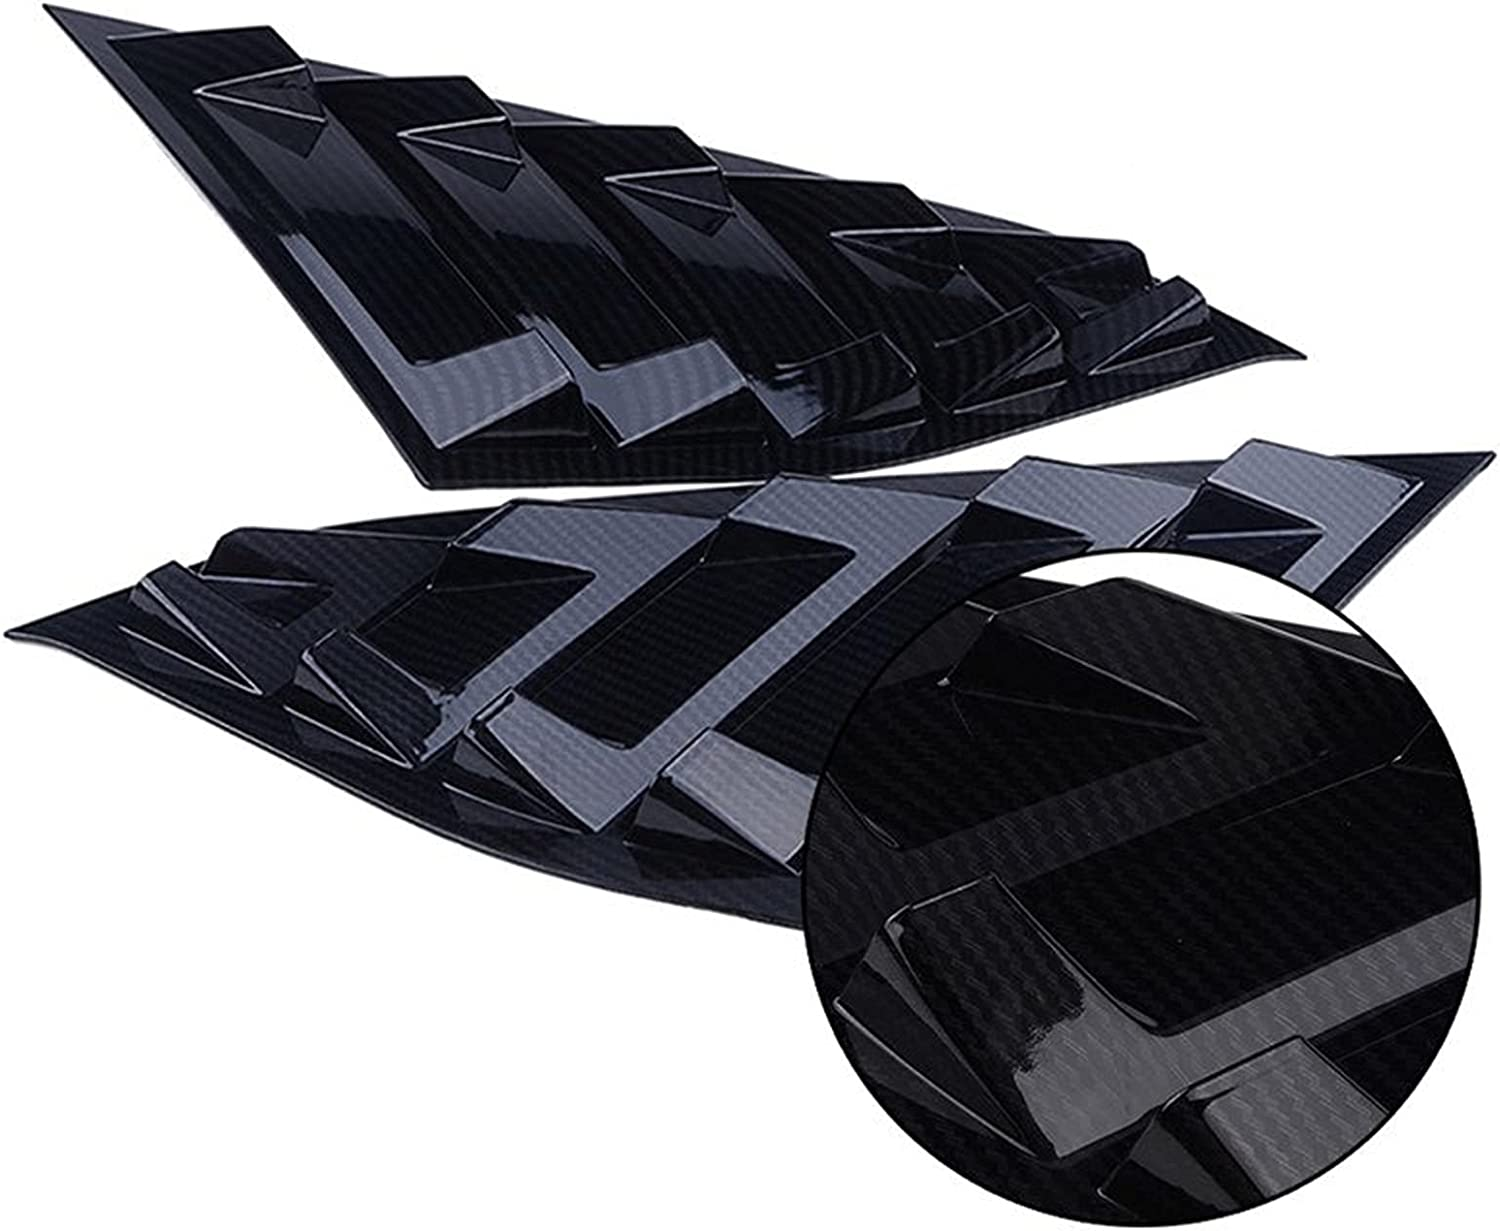 Car Exterior Louver Intake Vent Cover Accord for Honda Scoops Max 79% OFF 20 Be super welcome